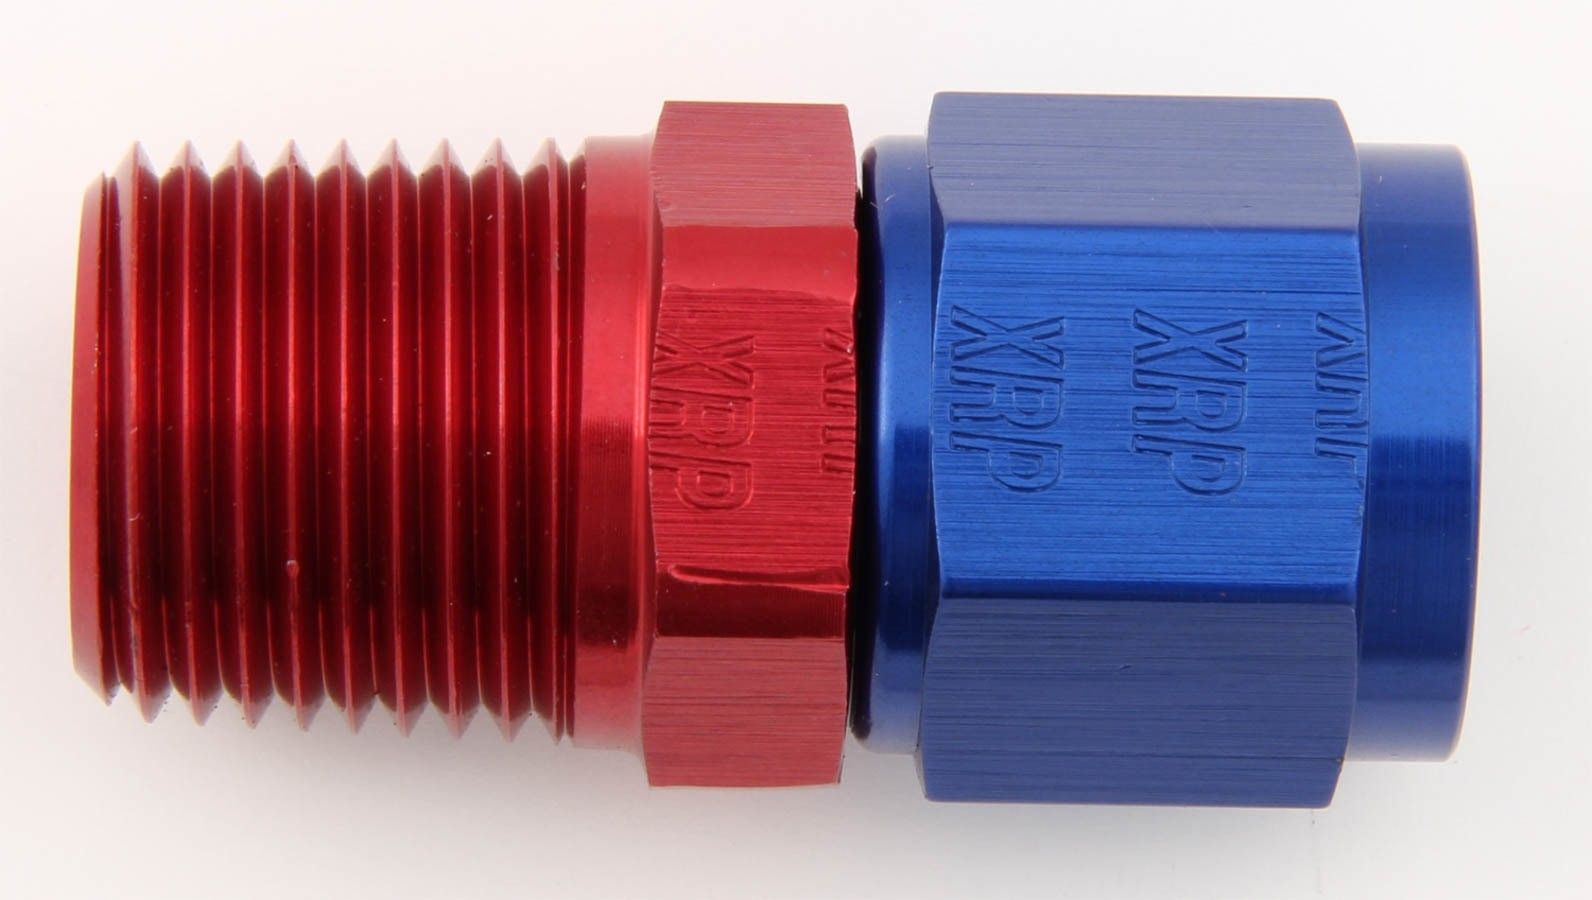 XRP 900688 Fitting, Adapter, Straight, 8 AN Female Swivel to 1/2 in NPT Male, Aluminum, Blue / Red Anodized, Each